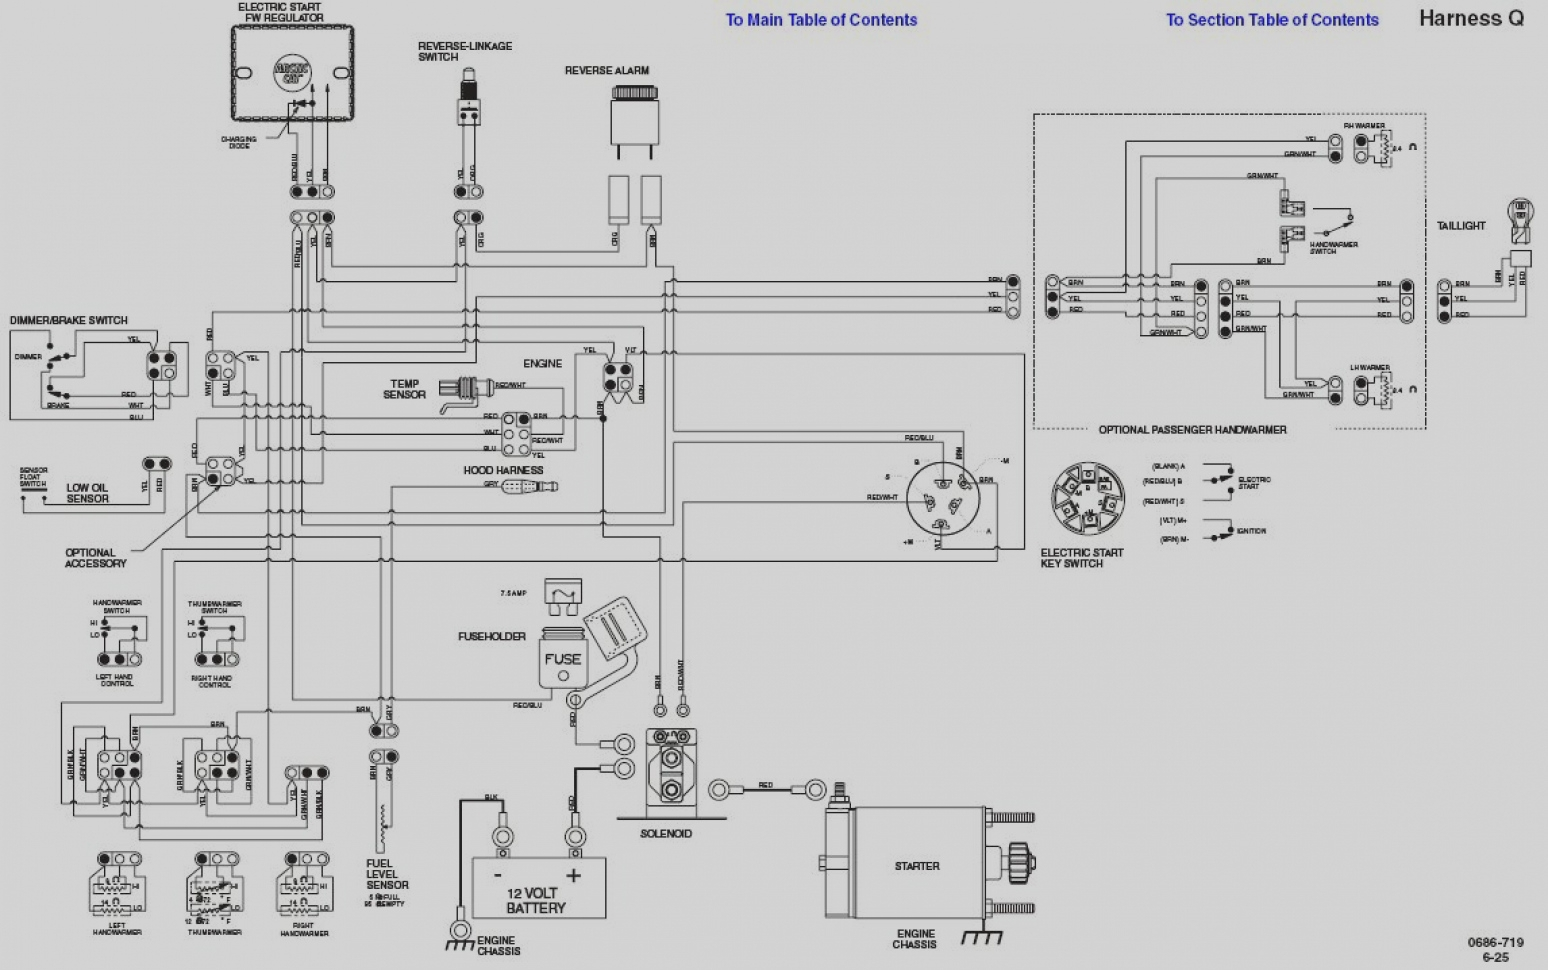 polaris ranger wiring schematic polaris ranger wiring diagram | free wiring diagram polaris ranger electrical schematic #1